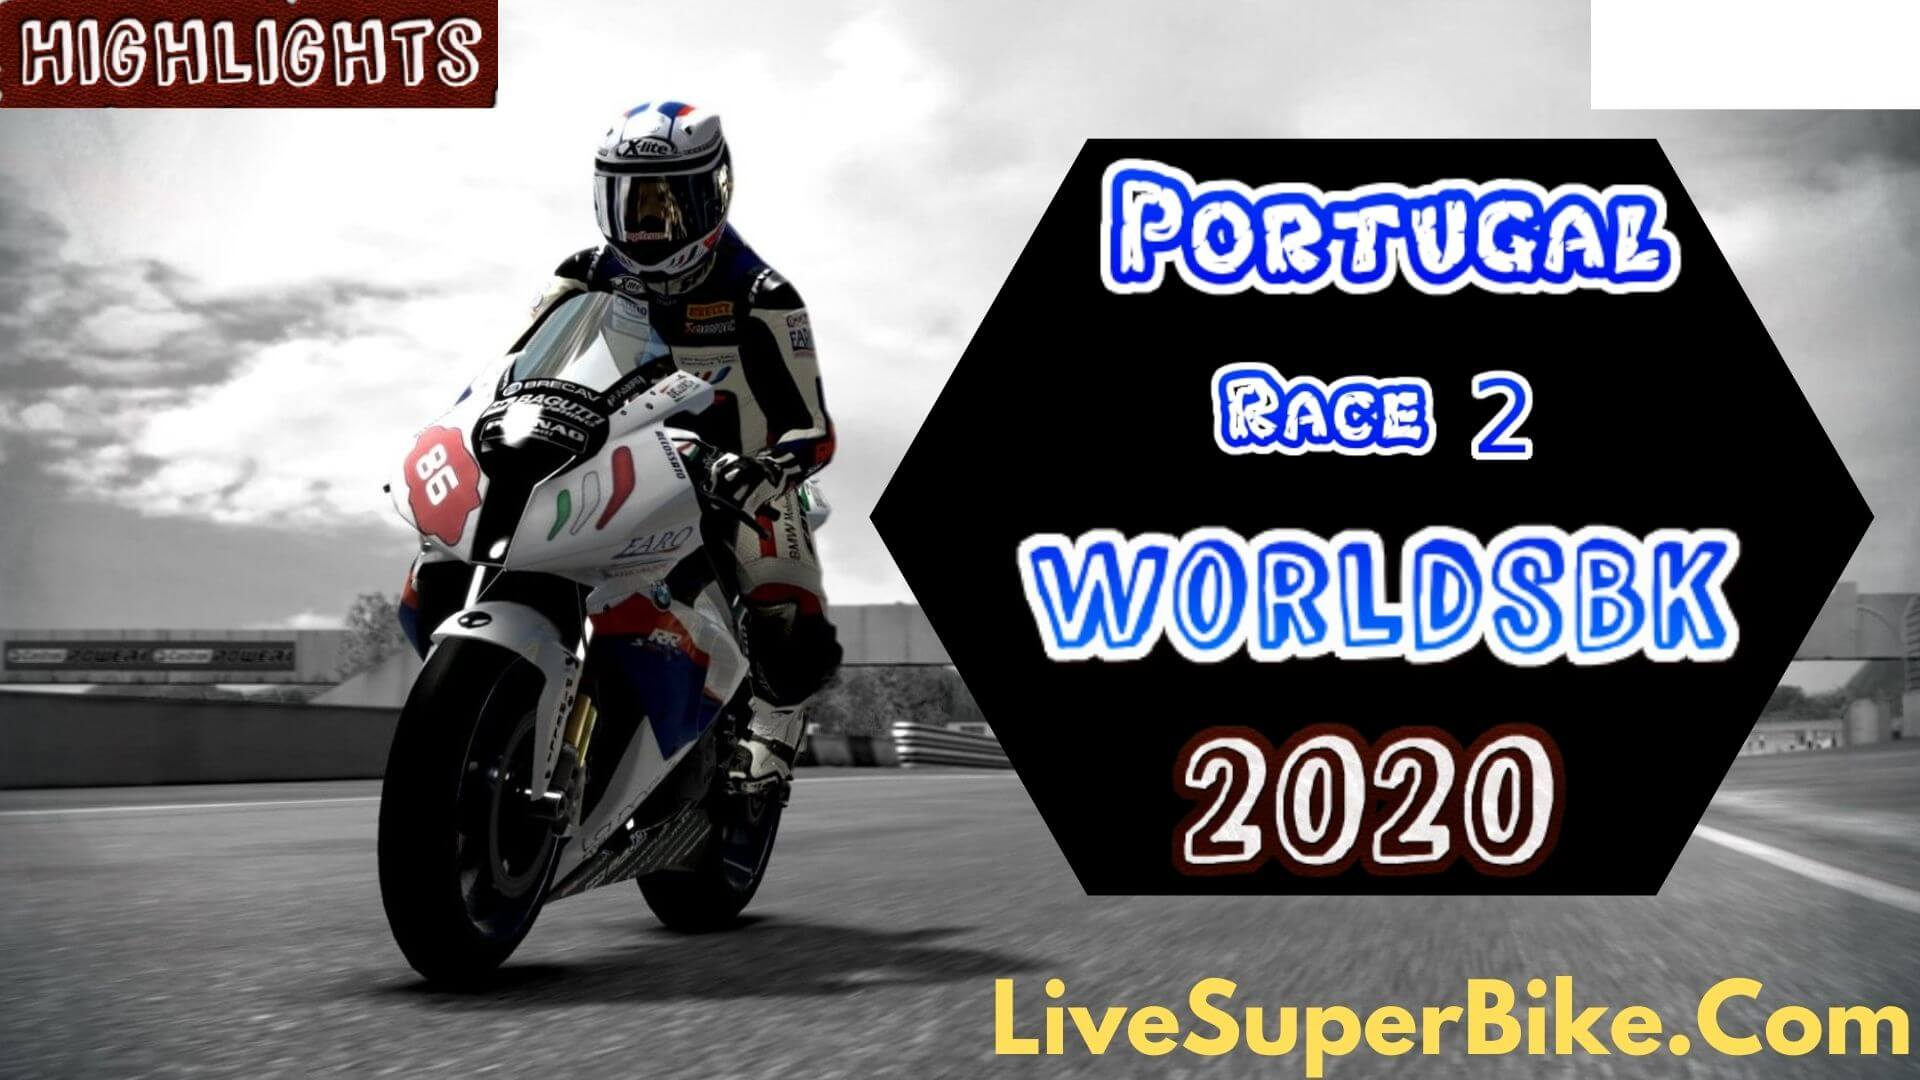 Portugal WorldSBK Race 2 Highlights 2020